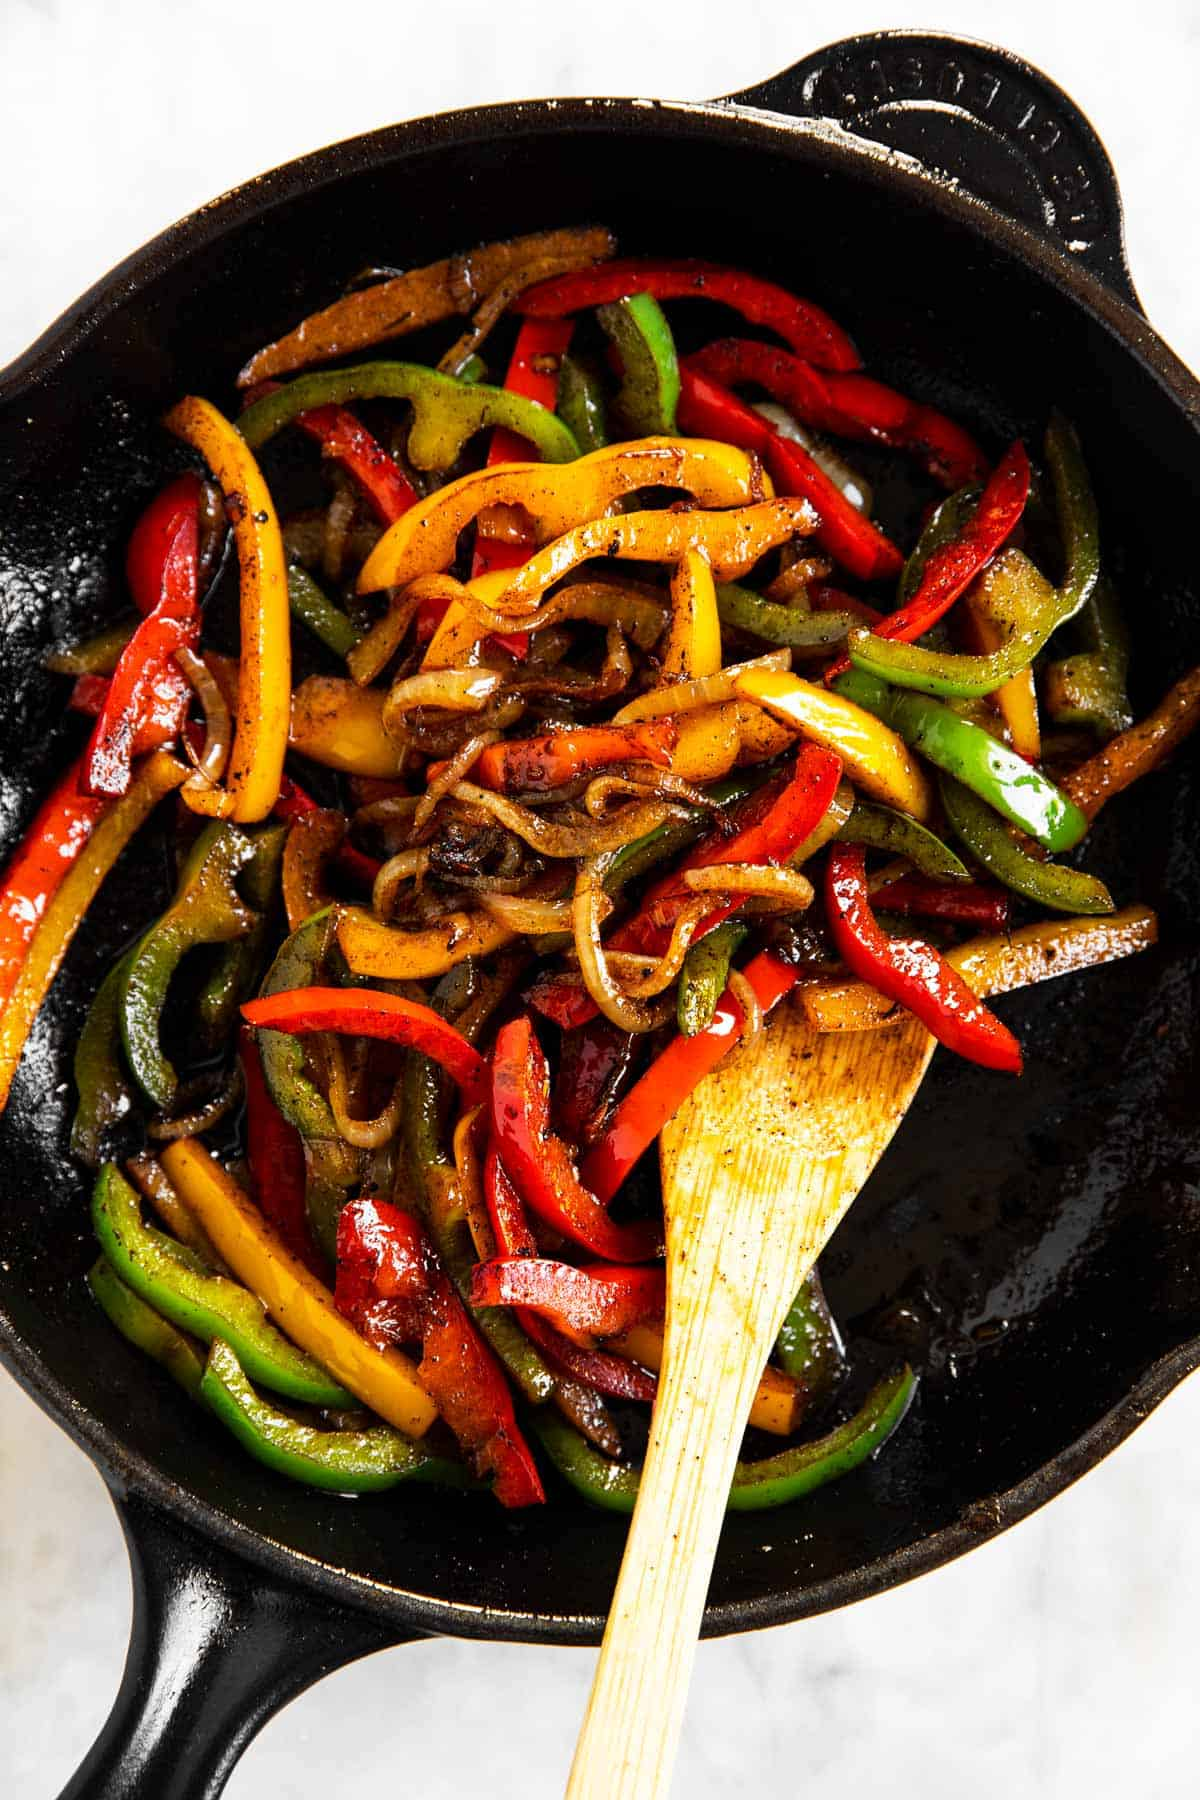 cooked onions and peppers in cast iron skillet with wooden spoon